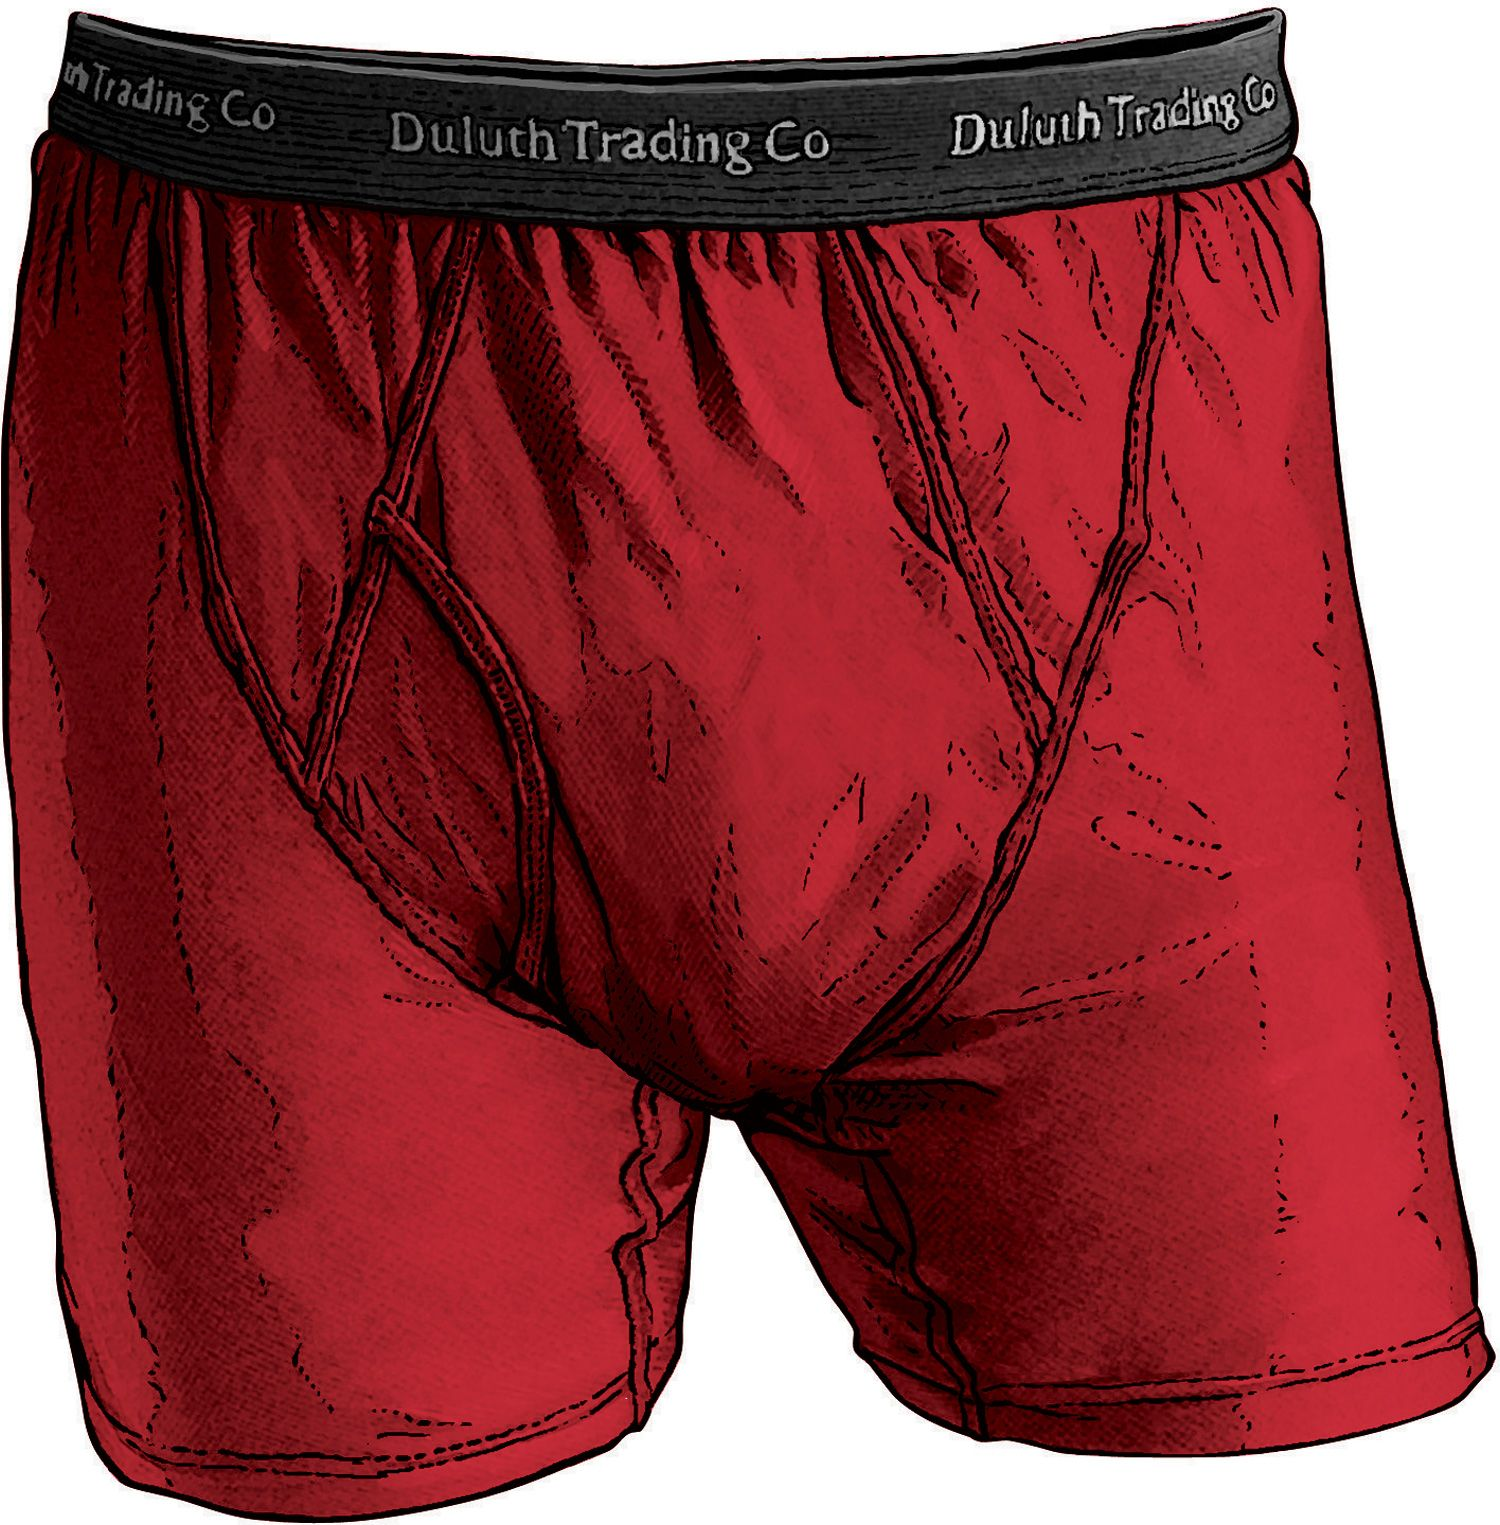 MEN'S BUCK NAKED PERFORMANCE BOXER BRIEFS http://www.duluthtrading.com/